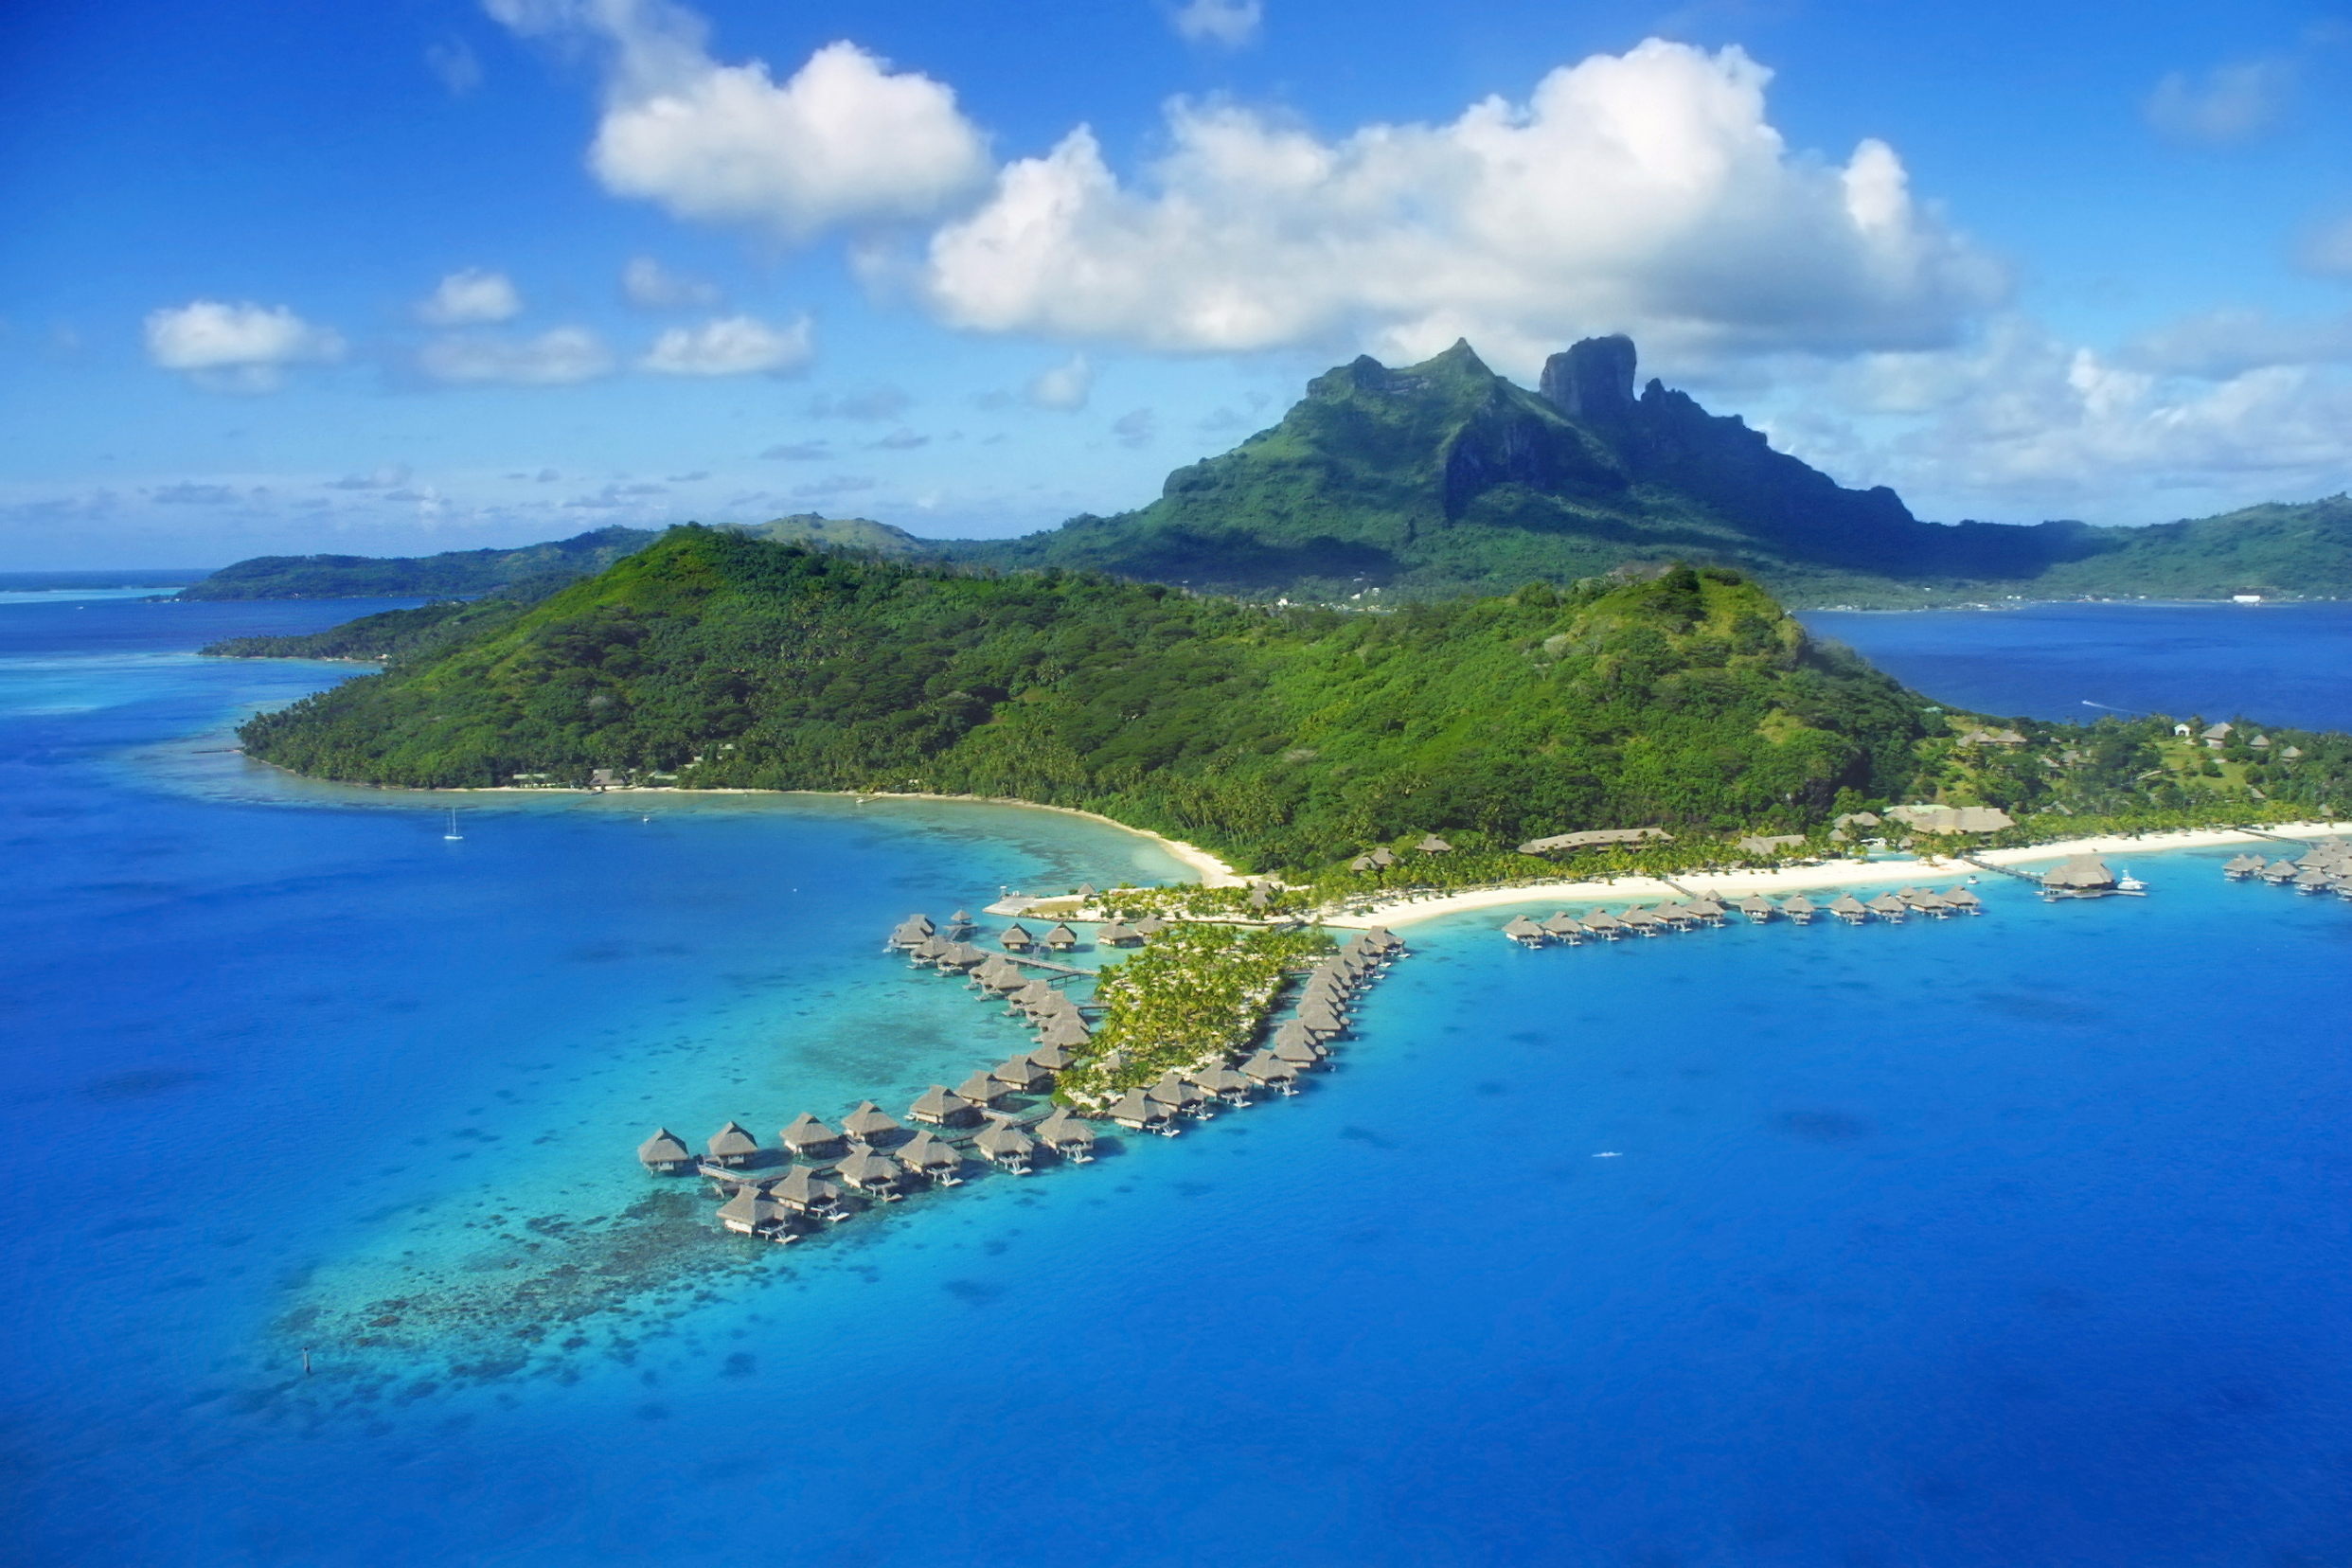 Aerial view of Bora Bora with overwater bungalows. Shutterstock/Christian Wilkinson